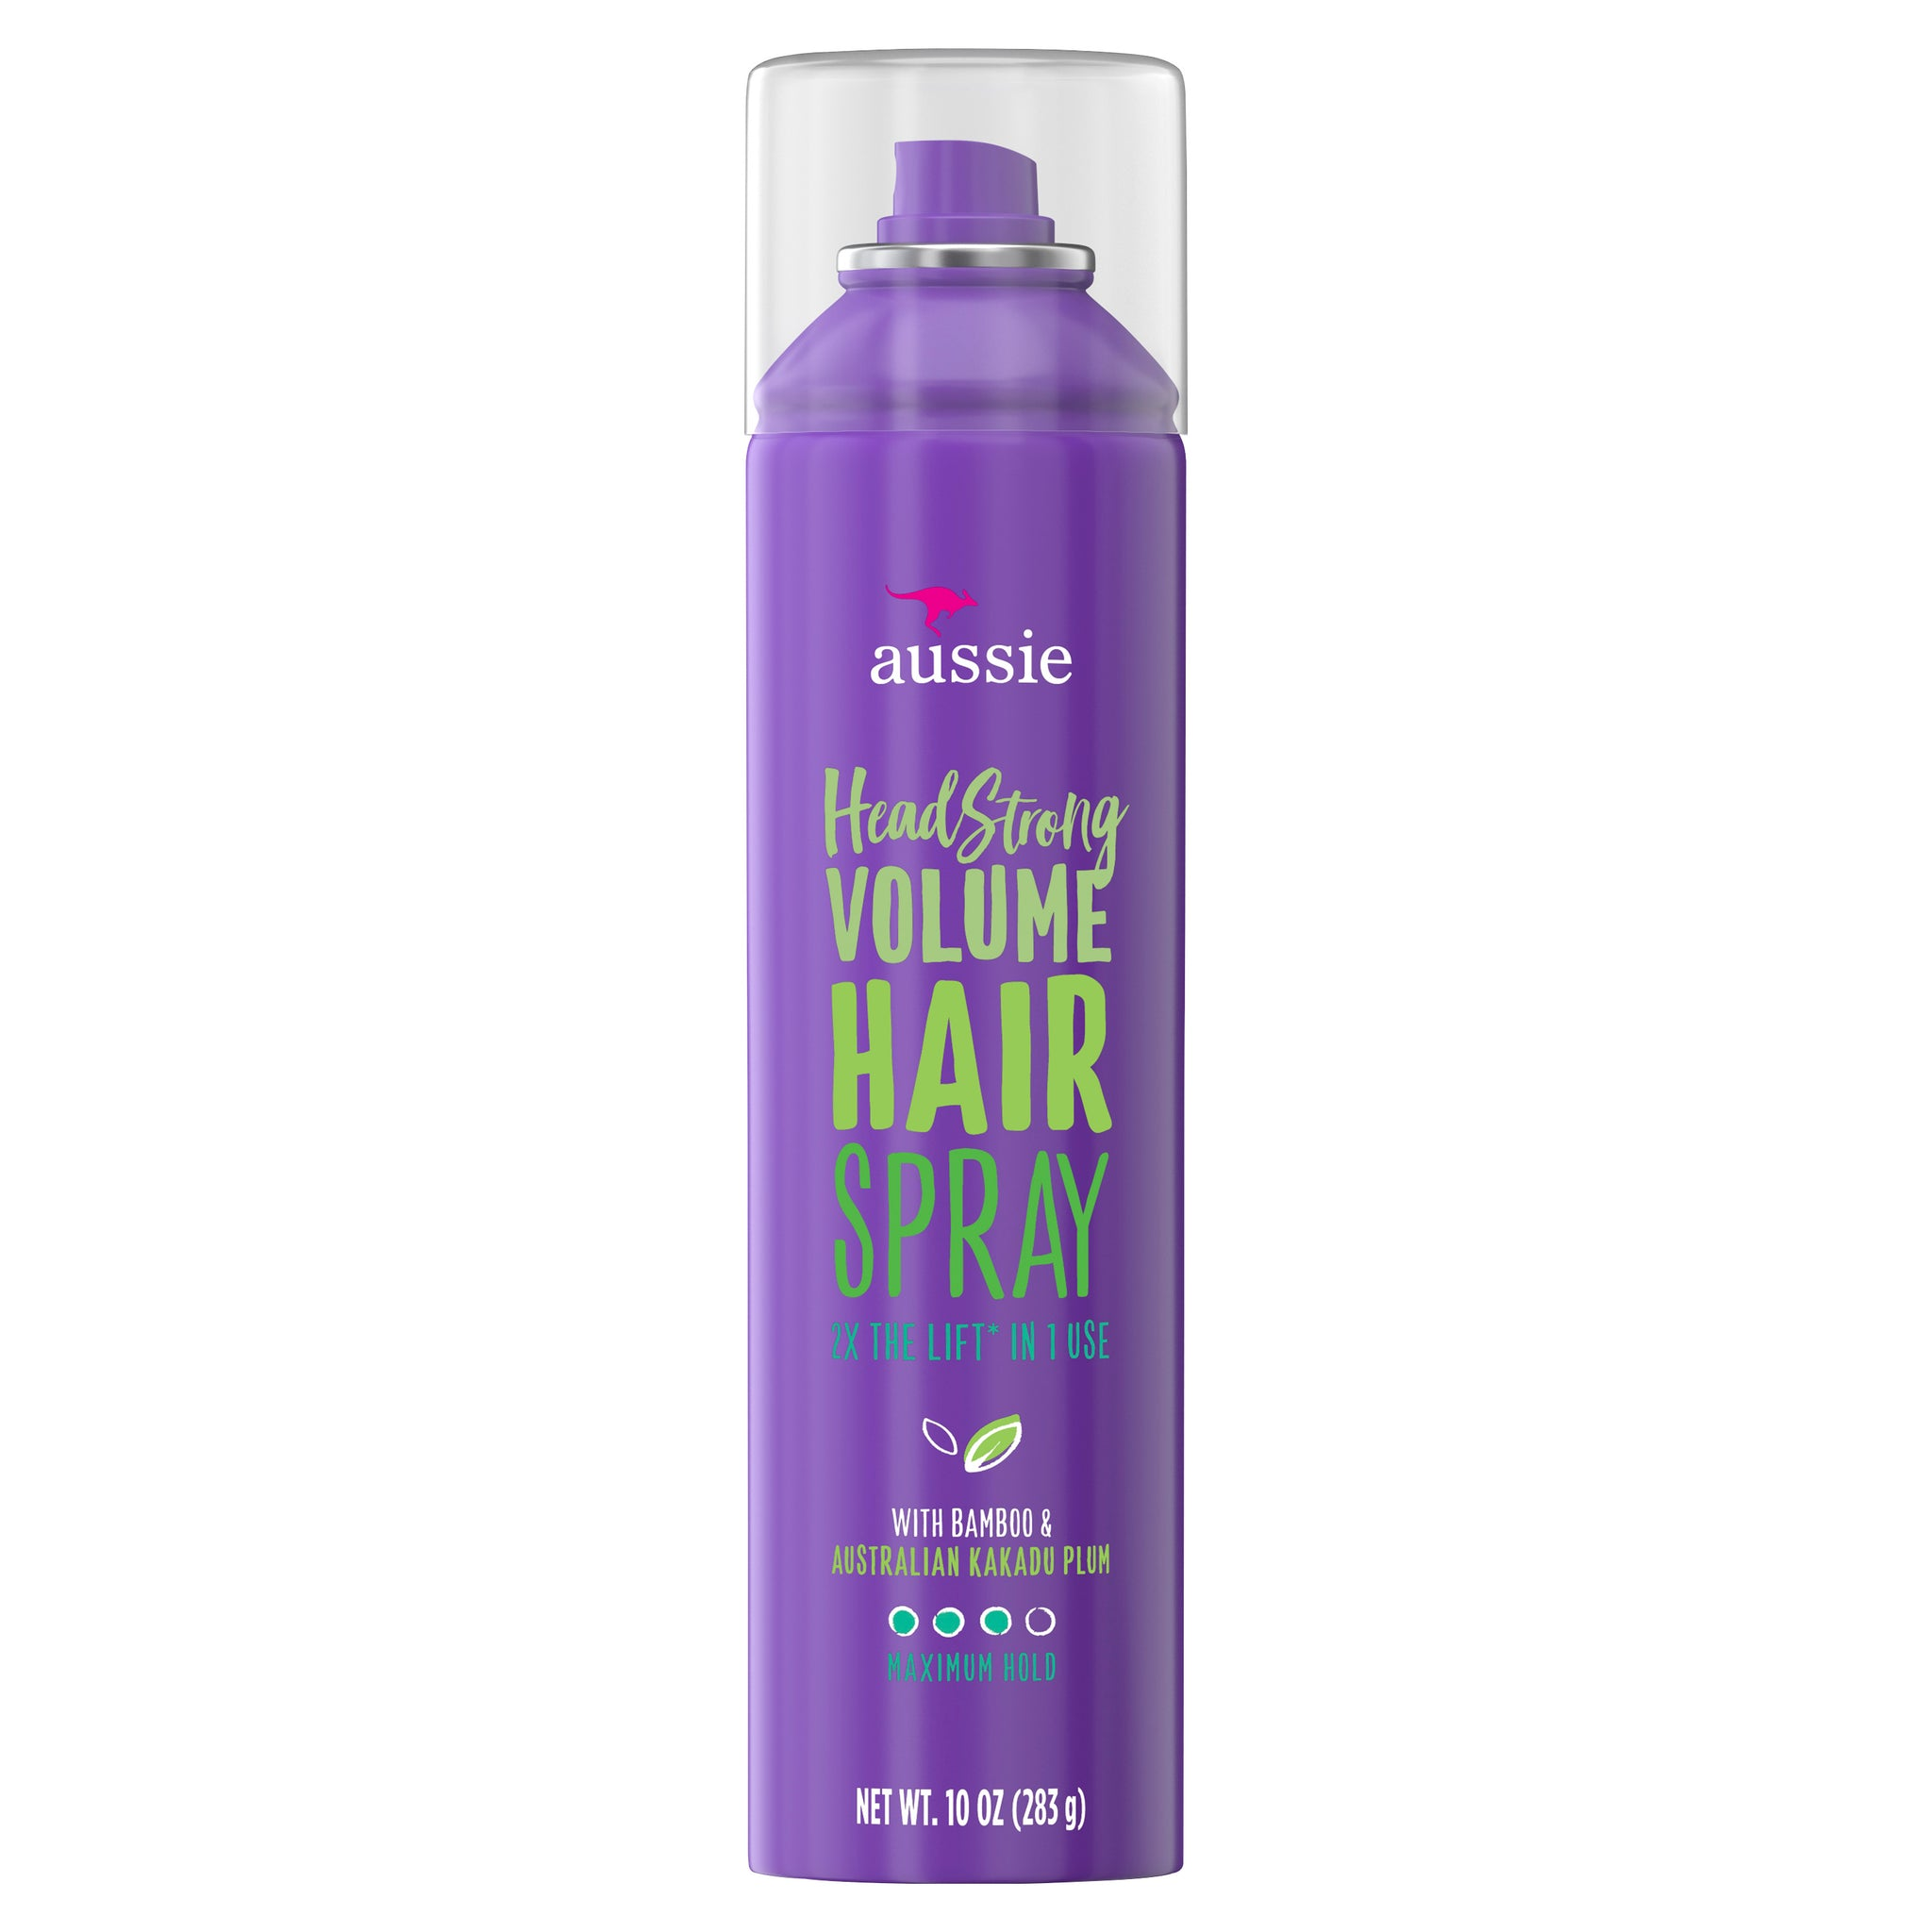 Aussie HeadStrong Volume Hair Spray 283g